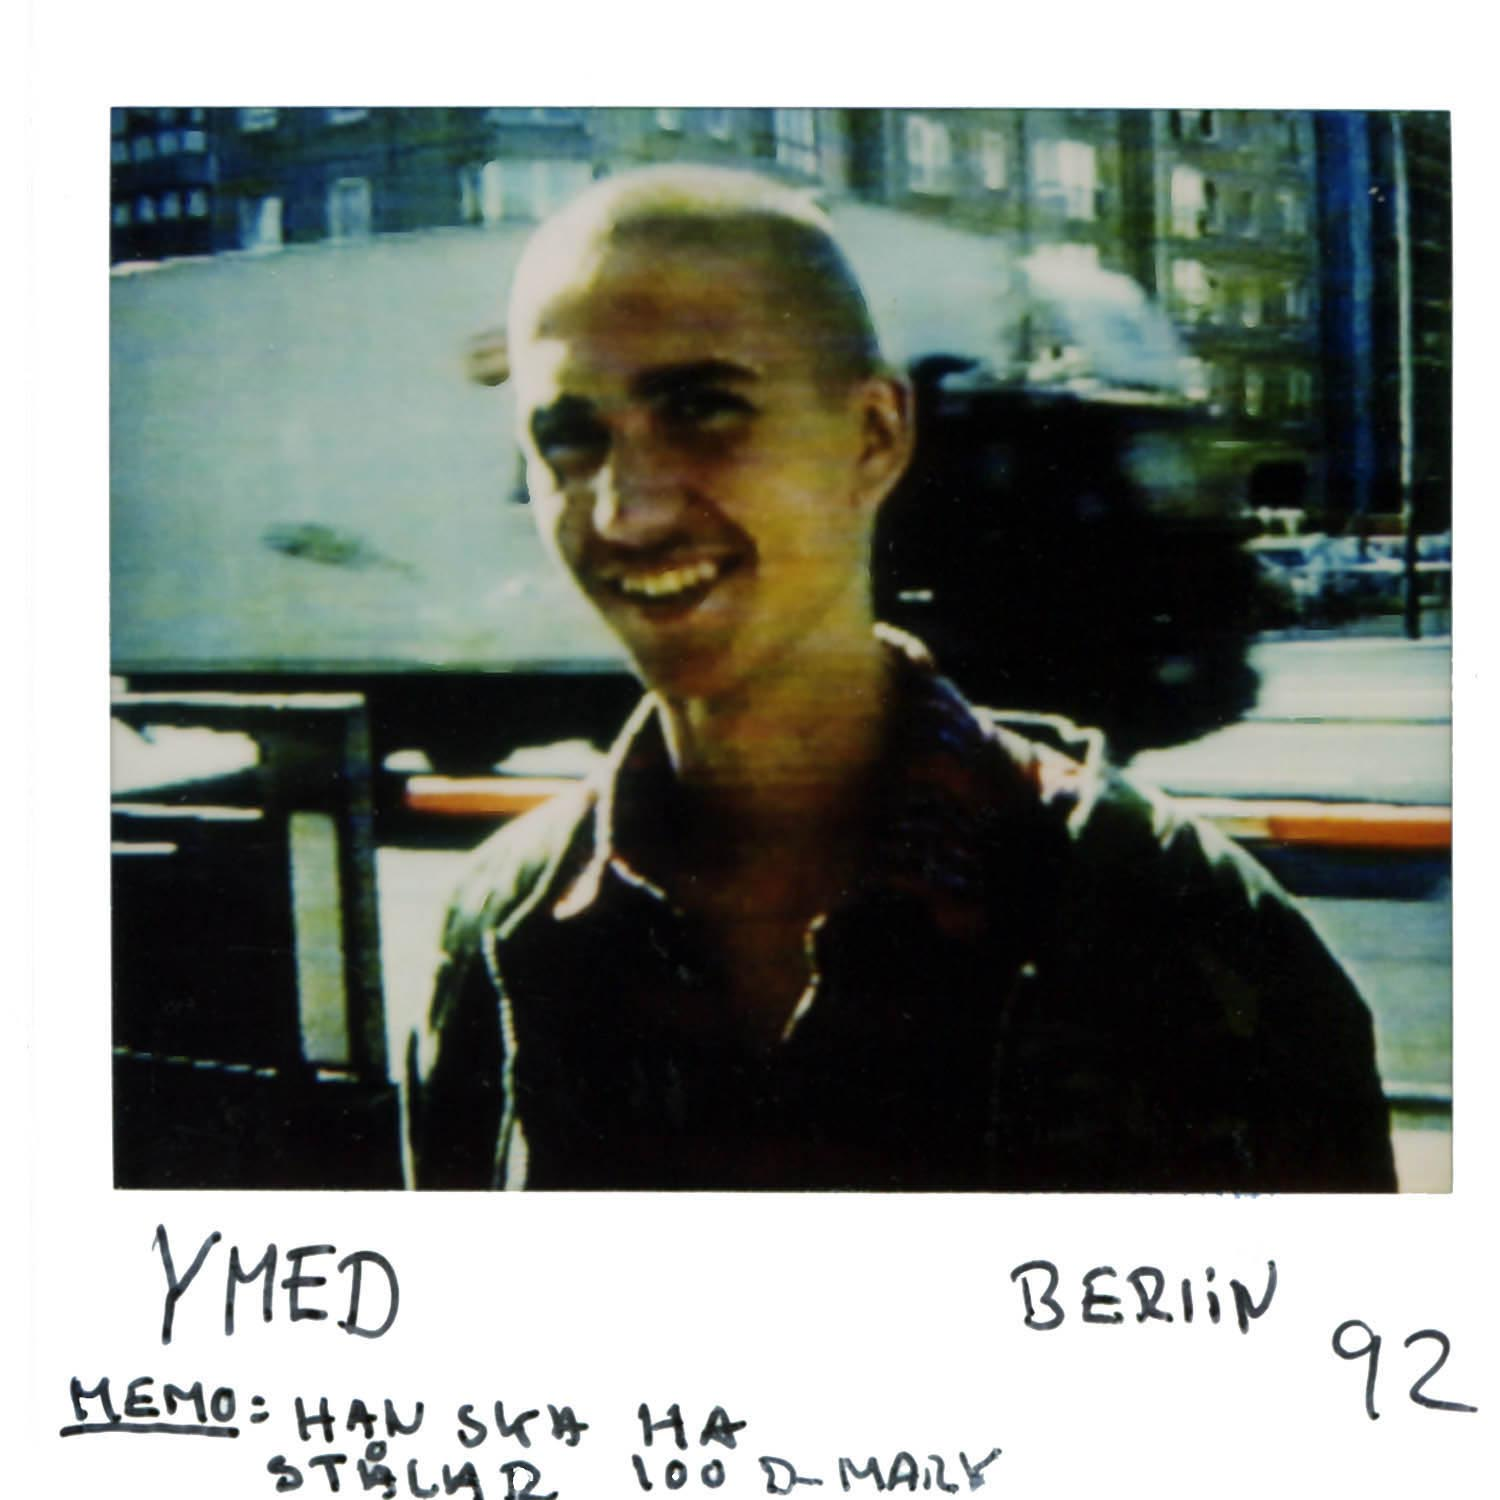 YMED  note to self: i own him 100 D-MARK  Berlin  -92